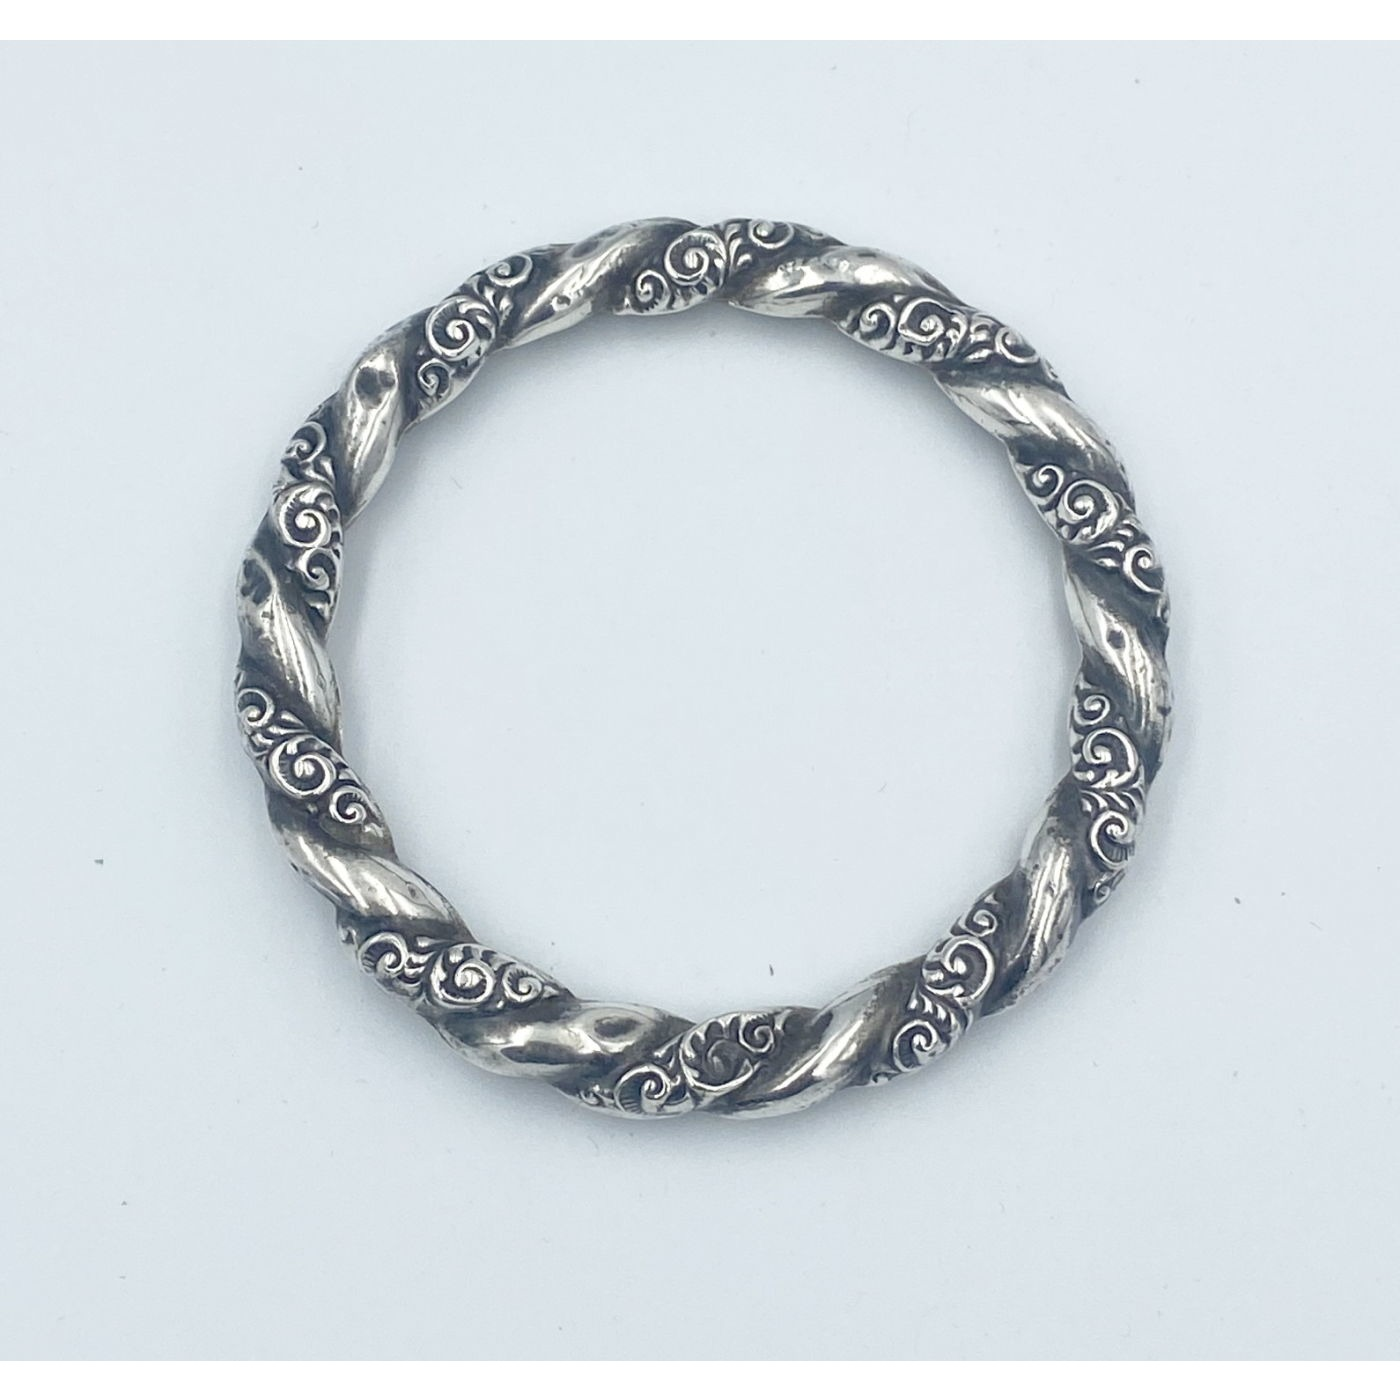 Lovely Sterling Silver Repousse Twist Bangle